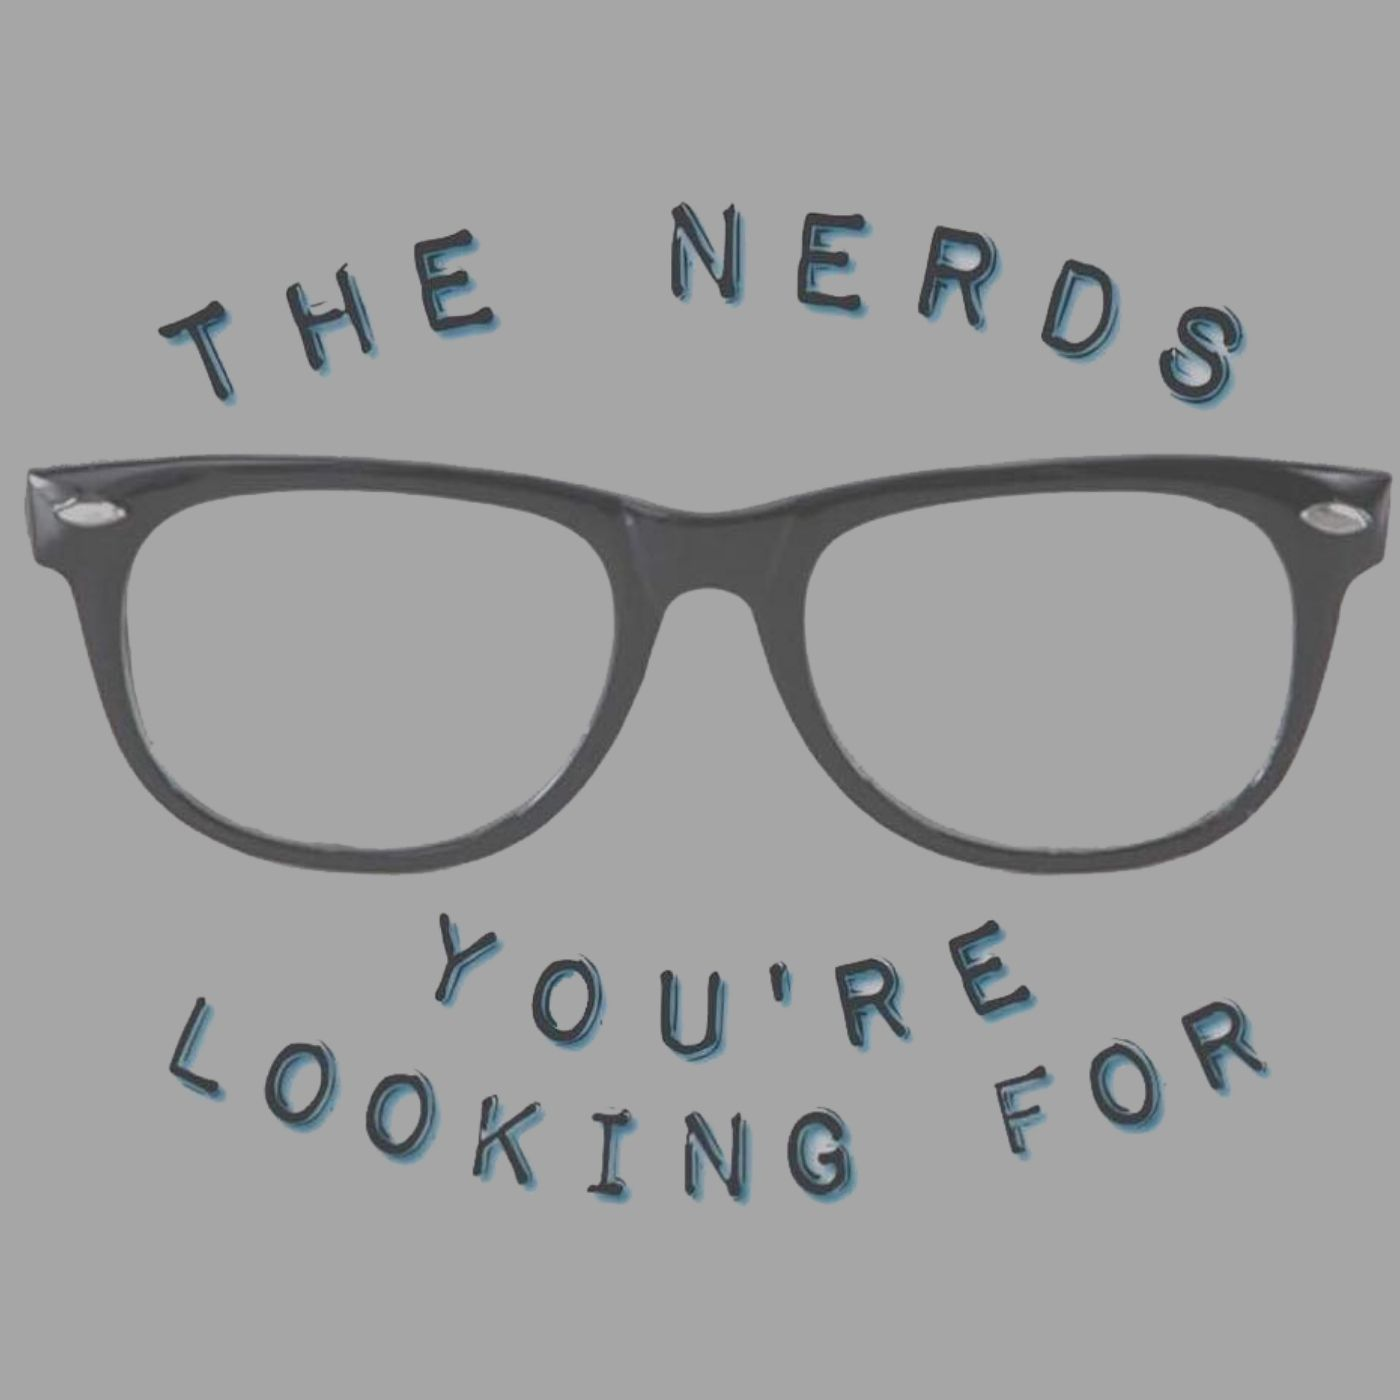 The Nerds You're Looking For | TV/Film Podcast show art